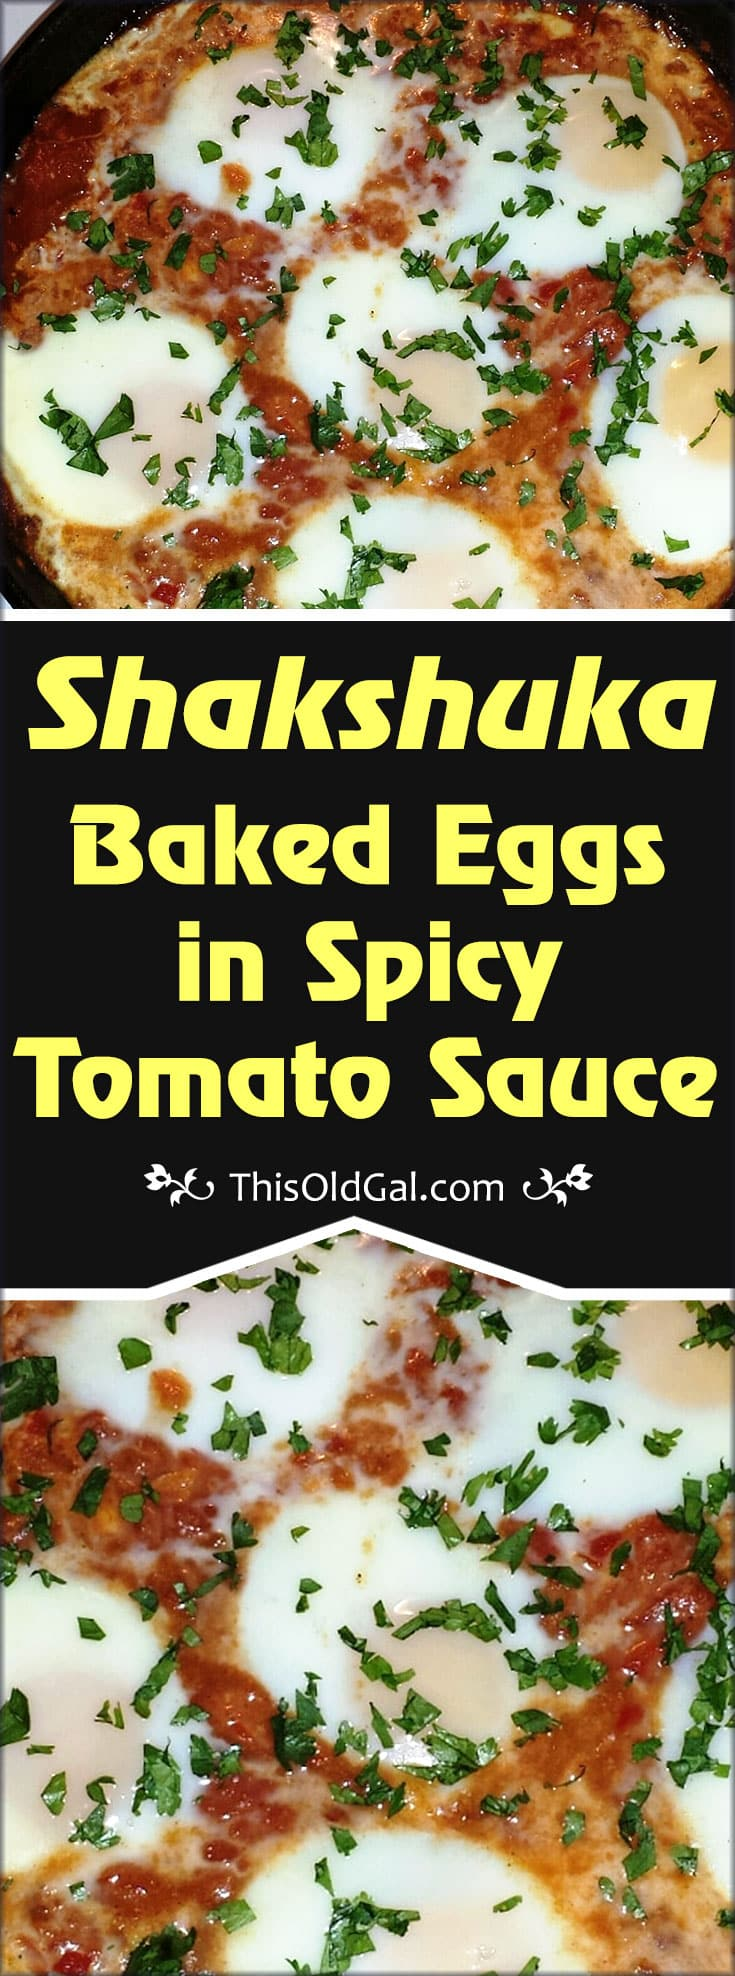 Shakshuka (Baked Eggs in Spicy Tomato Sauce)